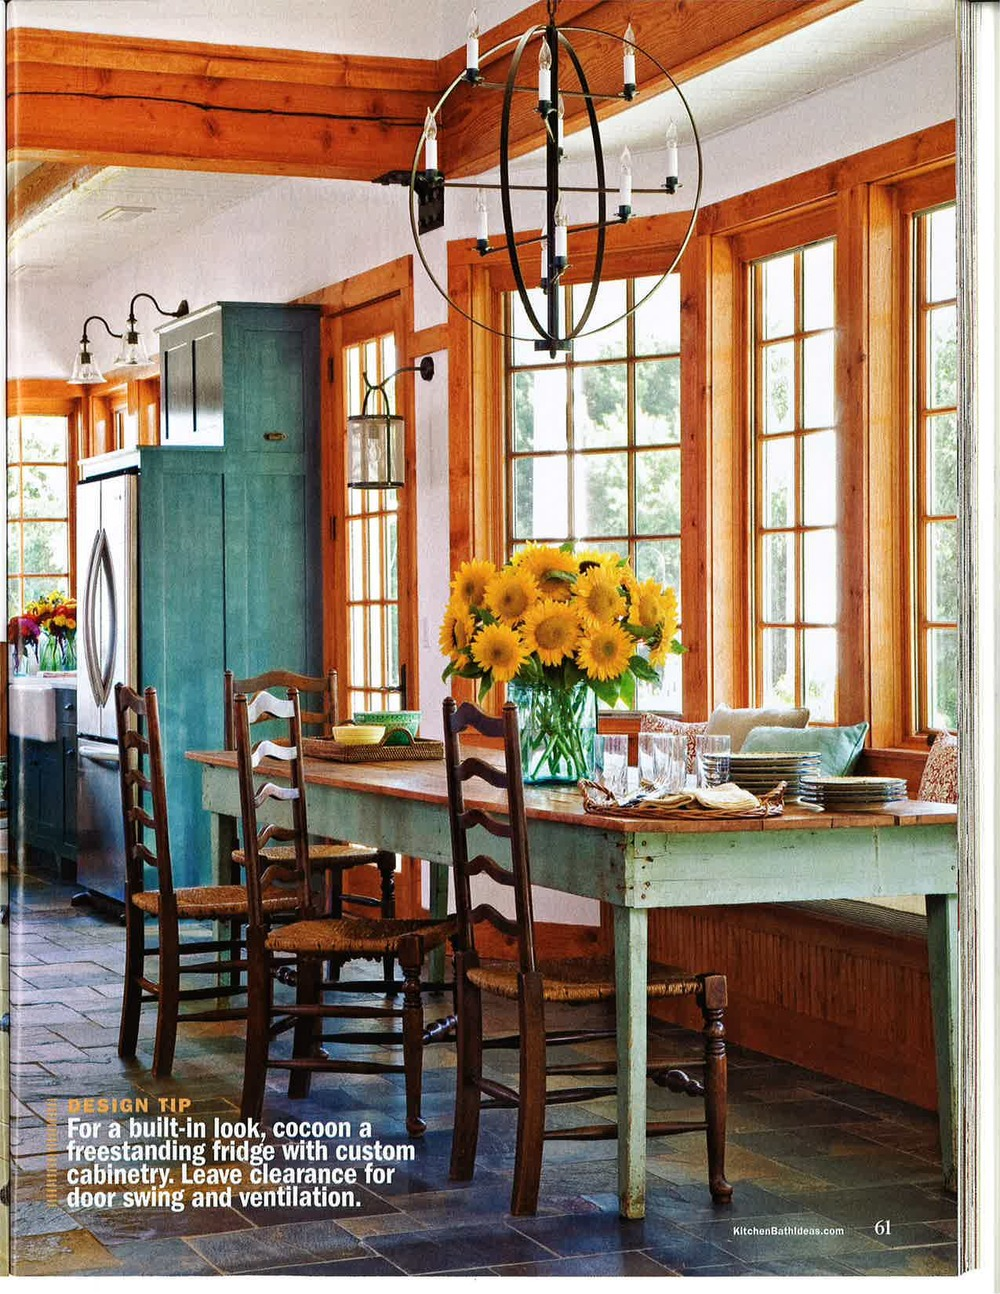 Feb2011_KitchenAndBathIdeas_Page_8.jpg